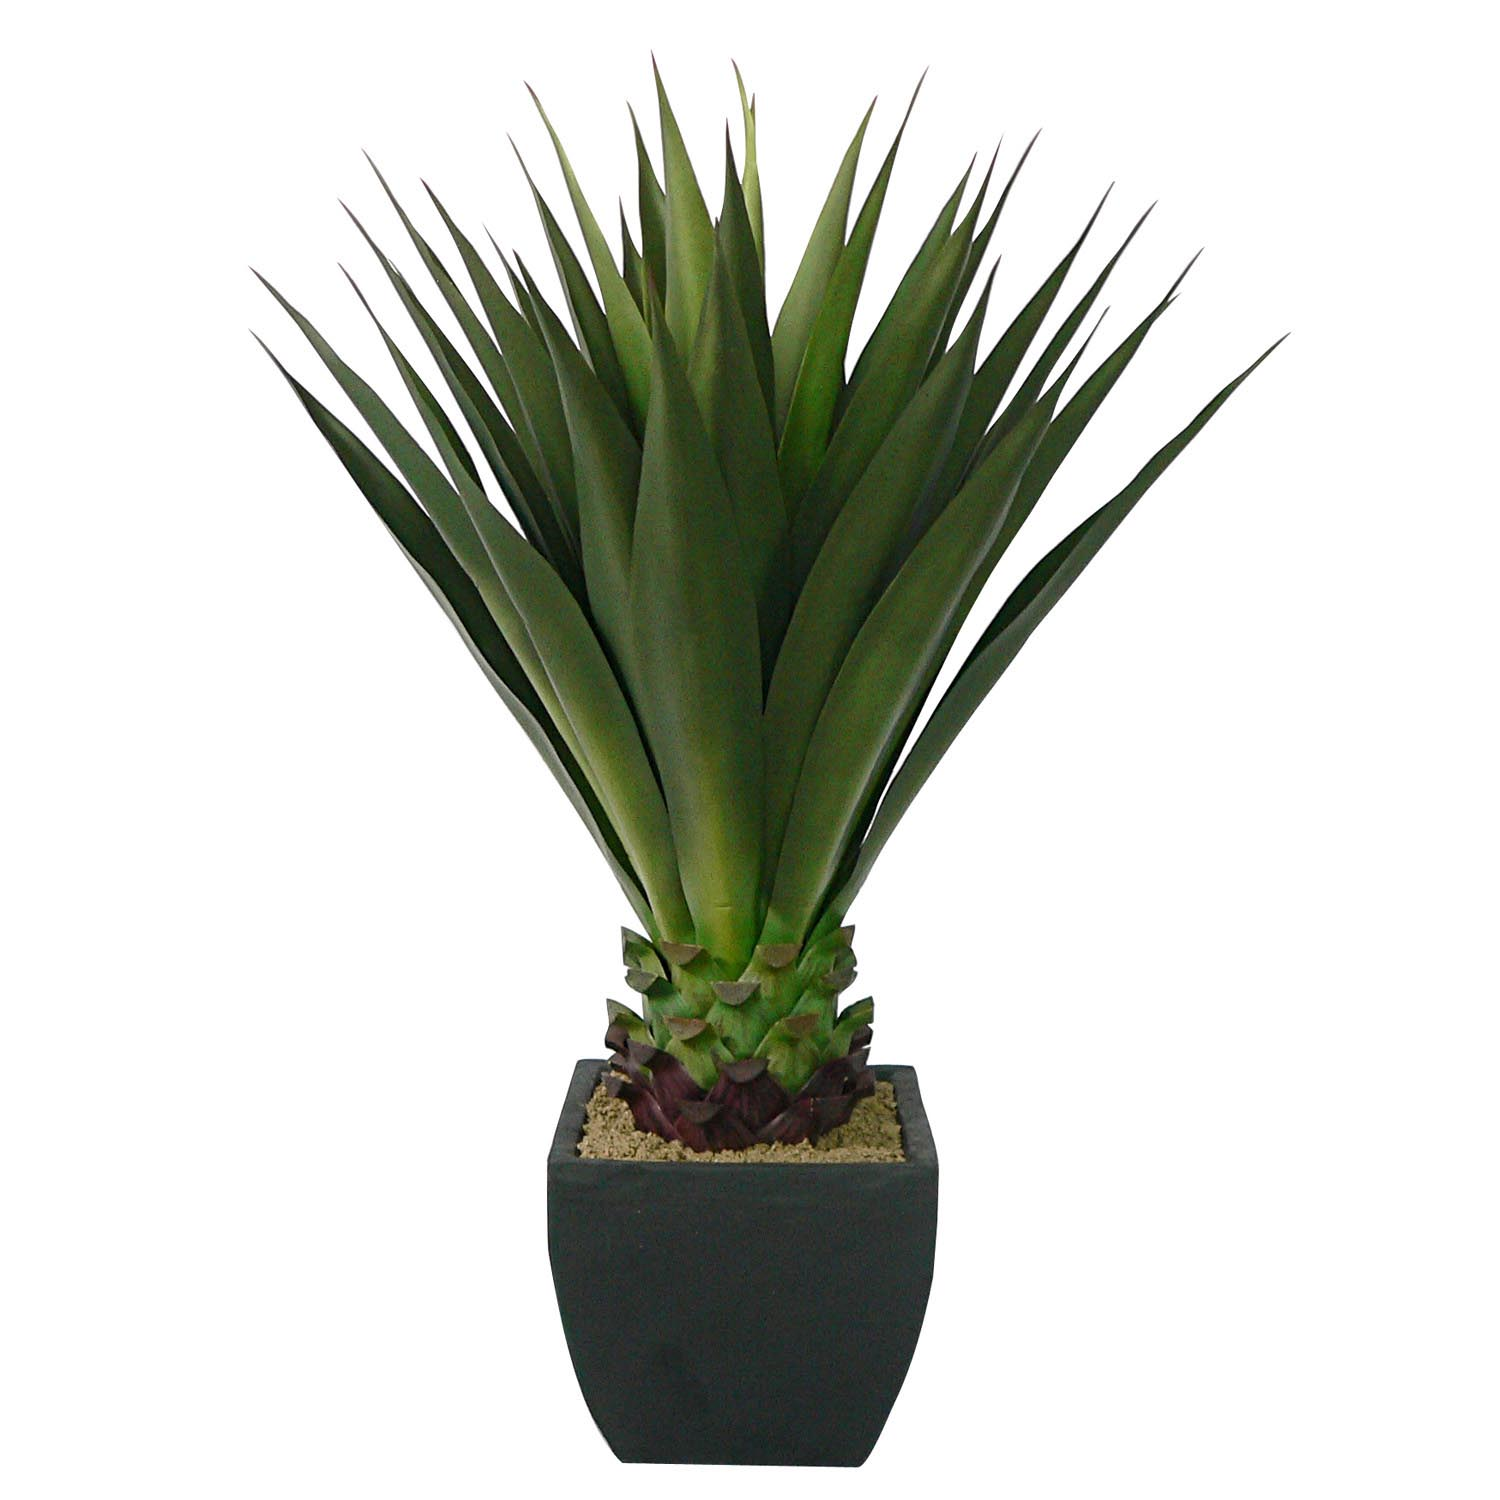 Select Giant-Aloe-Plant-Square-Planter Product Picture 2390